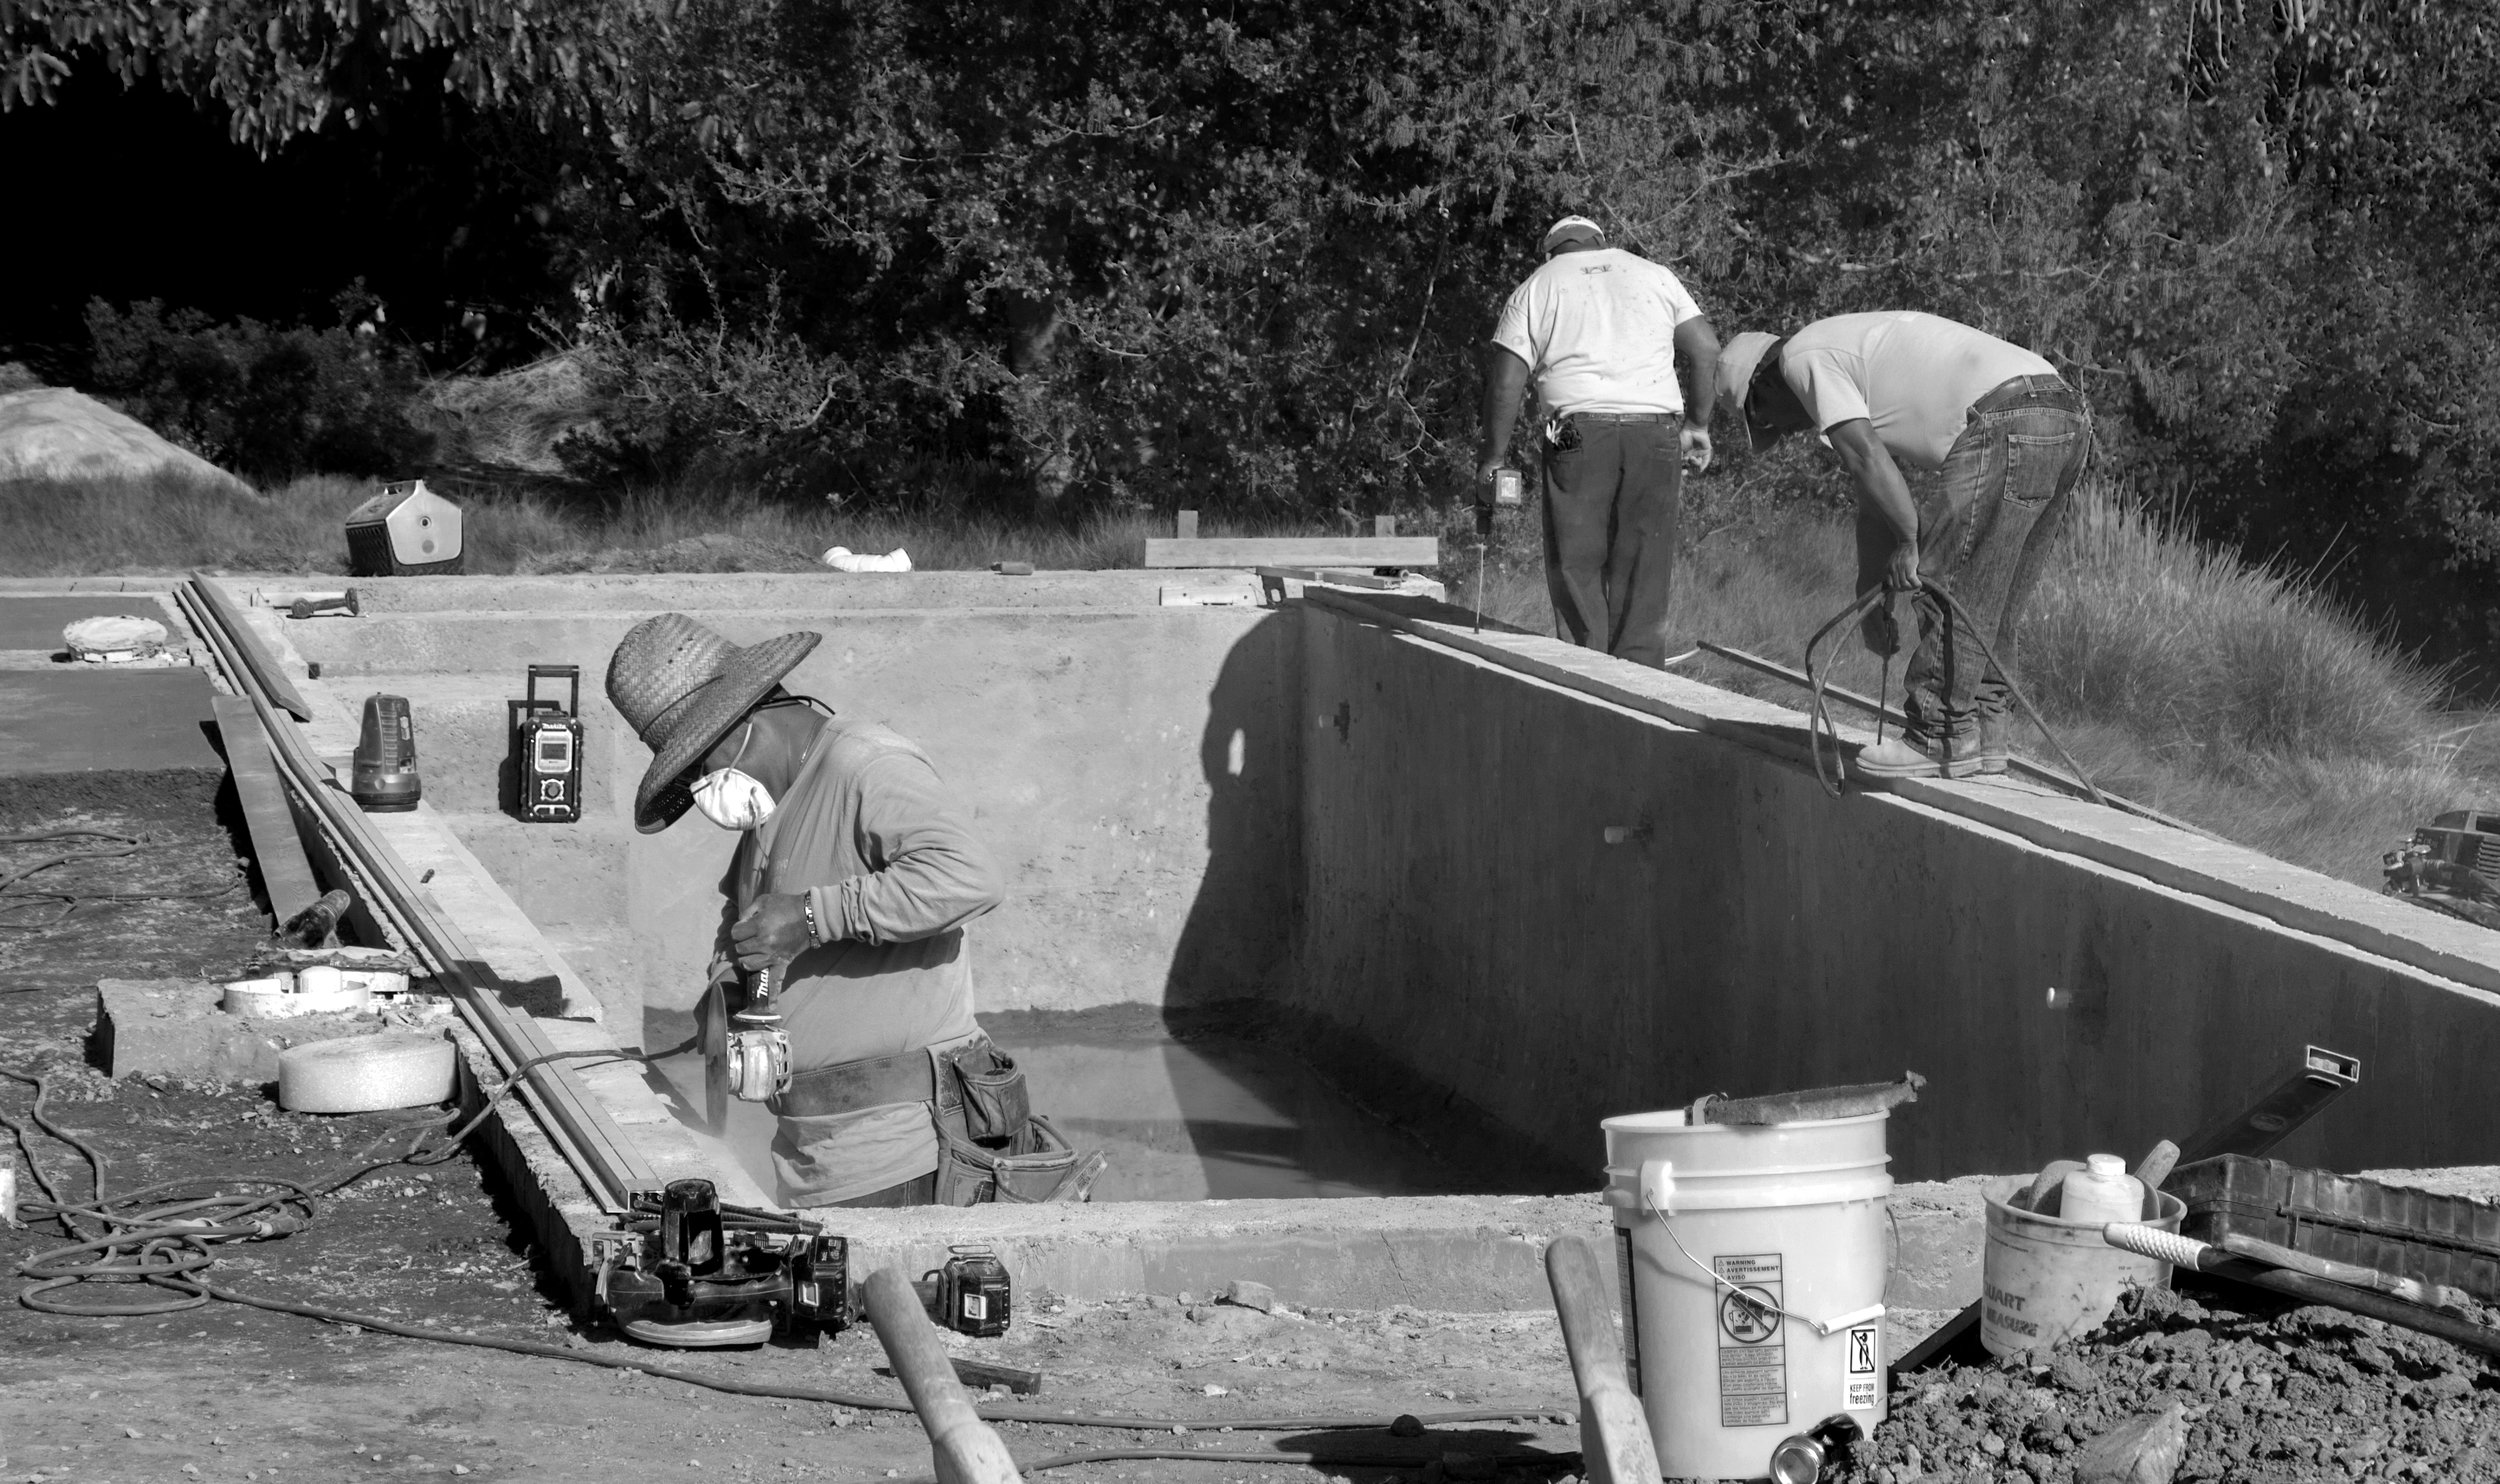 IMG_0005_BW_Pool_cutting cement cleaning holes.jpg